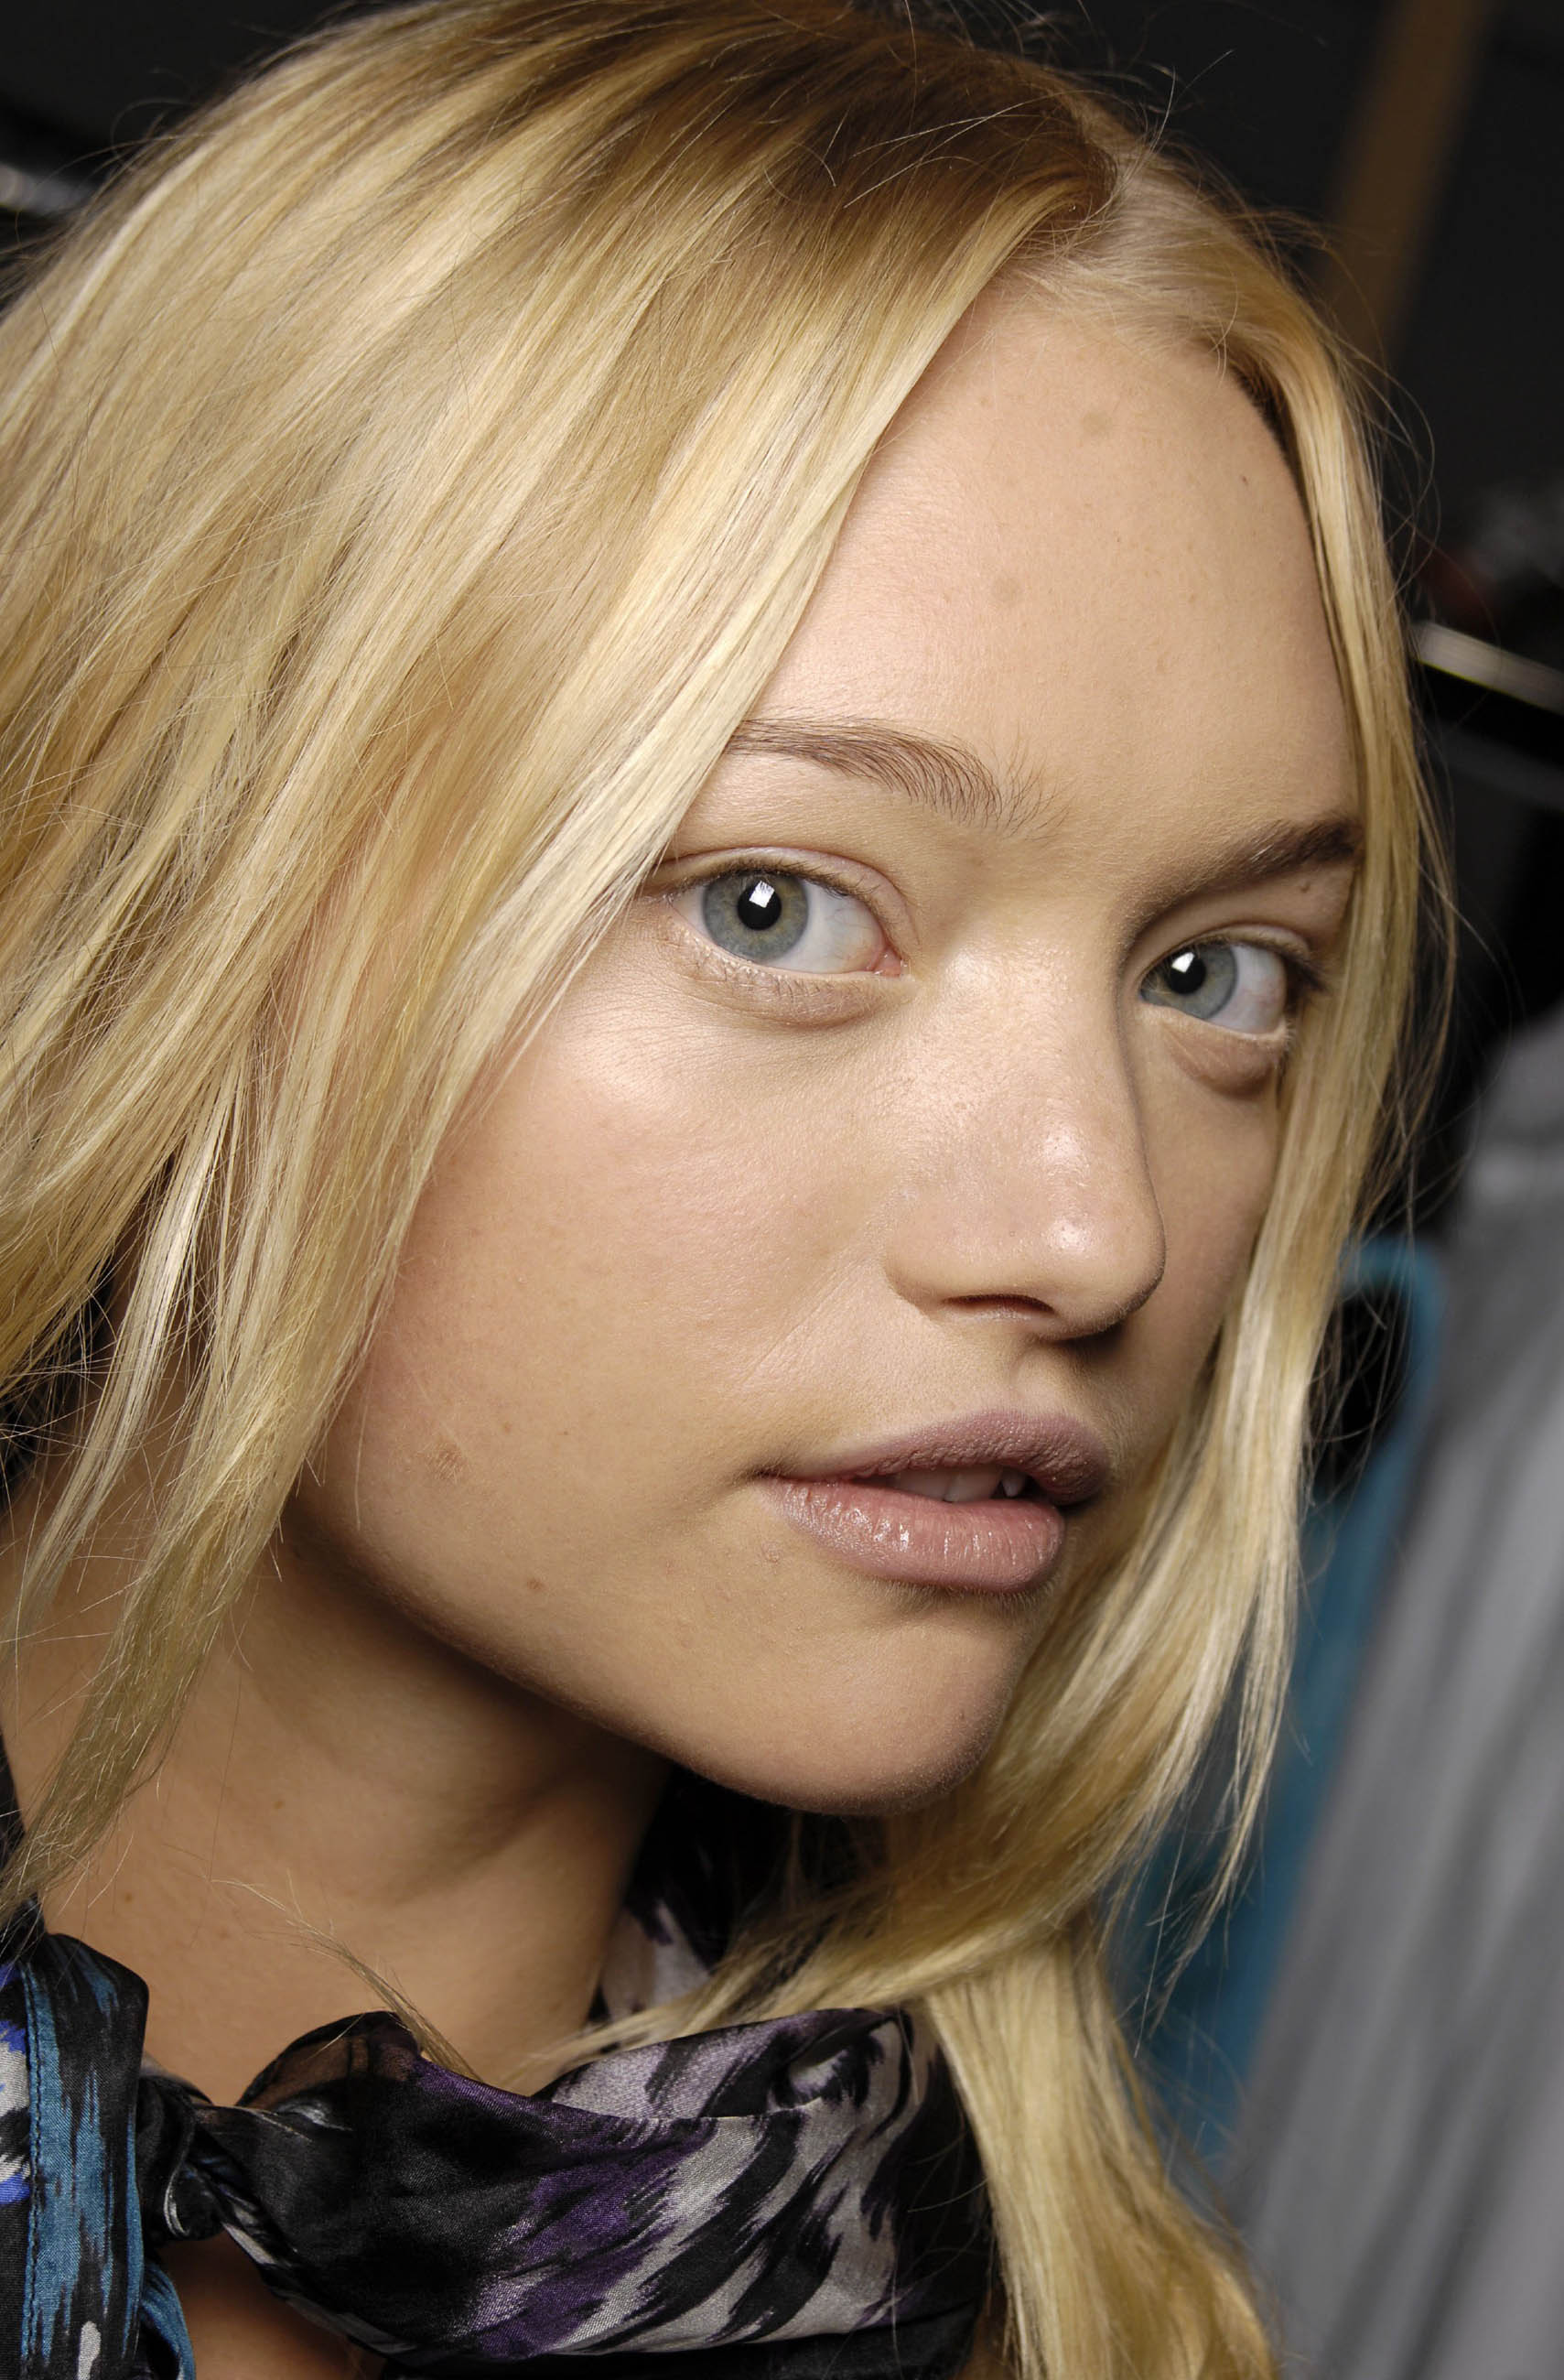 gemma ward victoria's secret